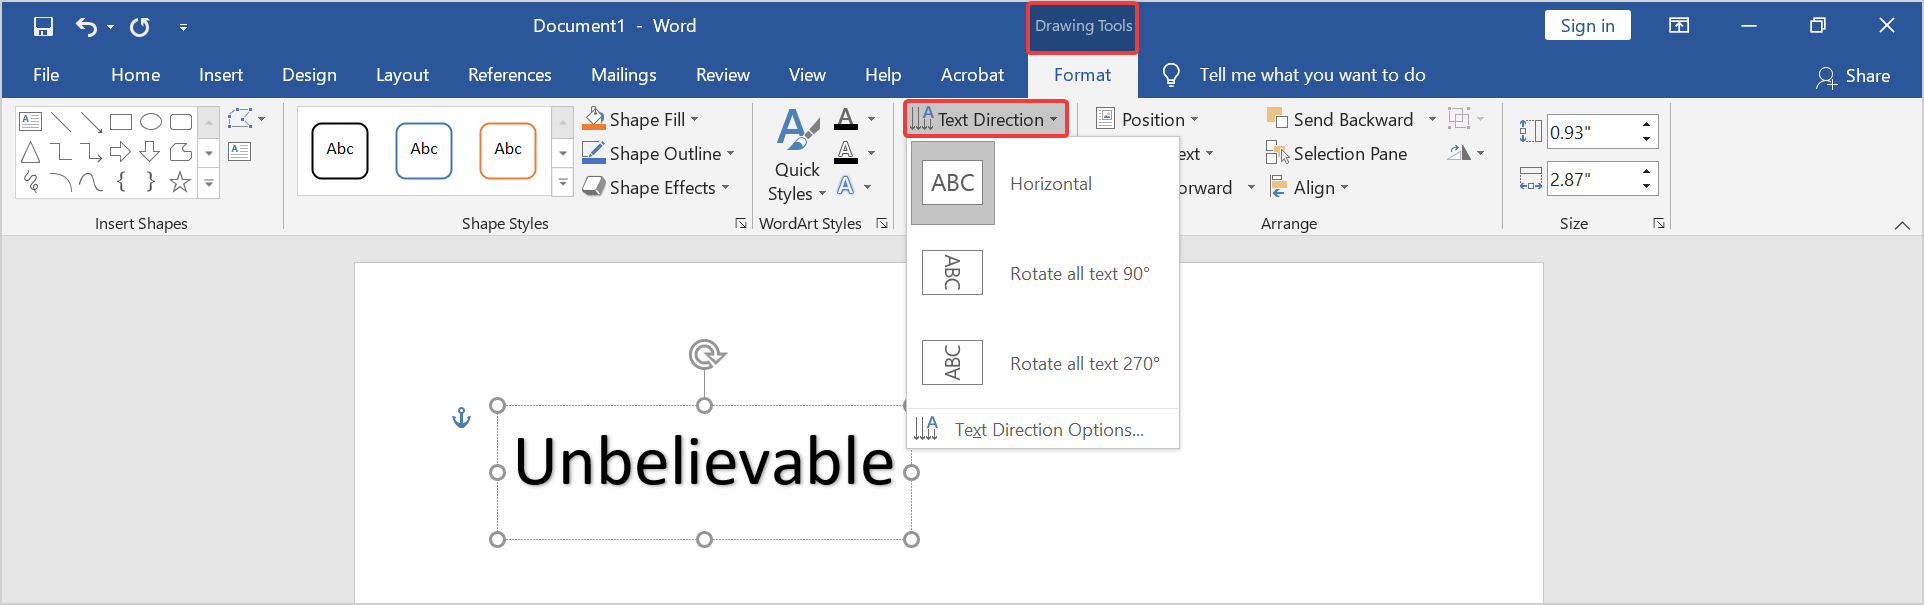 change the text direction in ms word